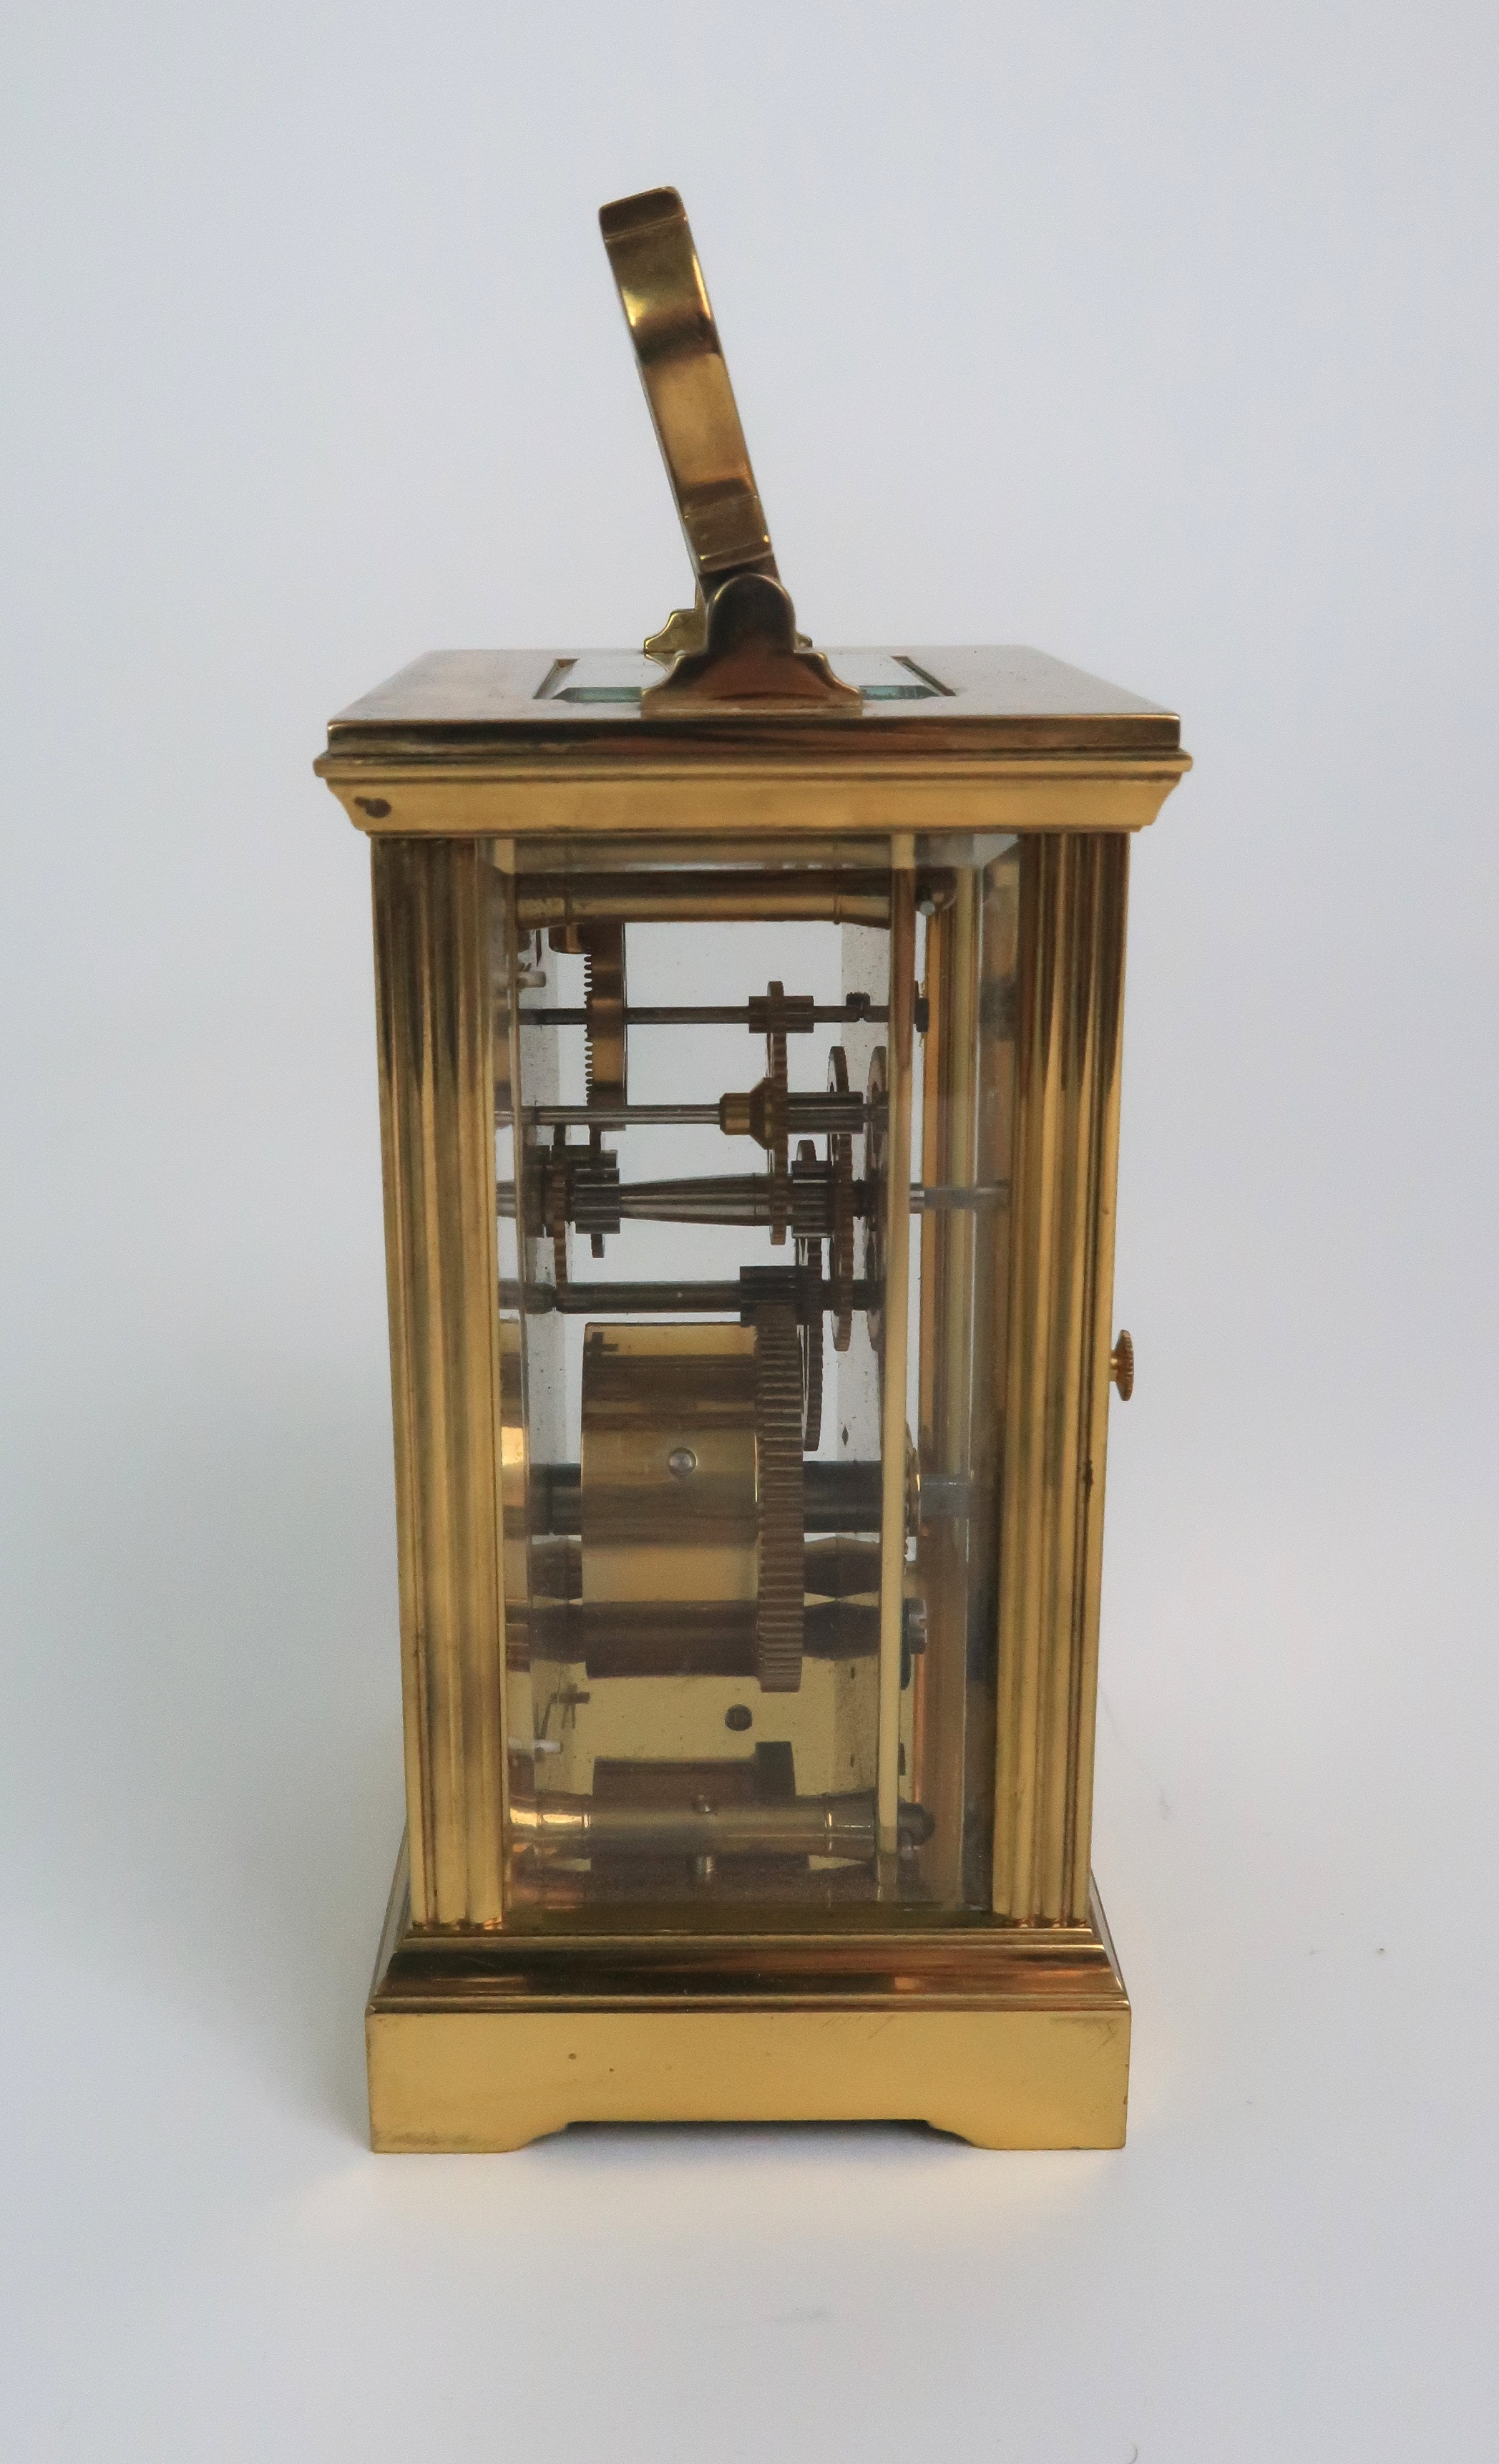 A GARRARD AND CO BRASS AND GLASS CARRIAGE CLOCK the white dial with Roman numerals and the - Image 2 of 6